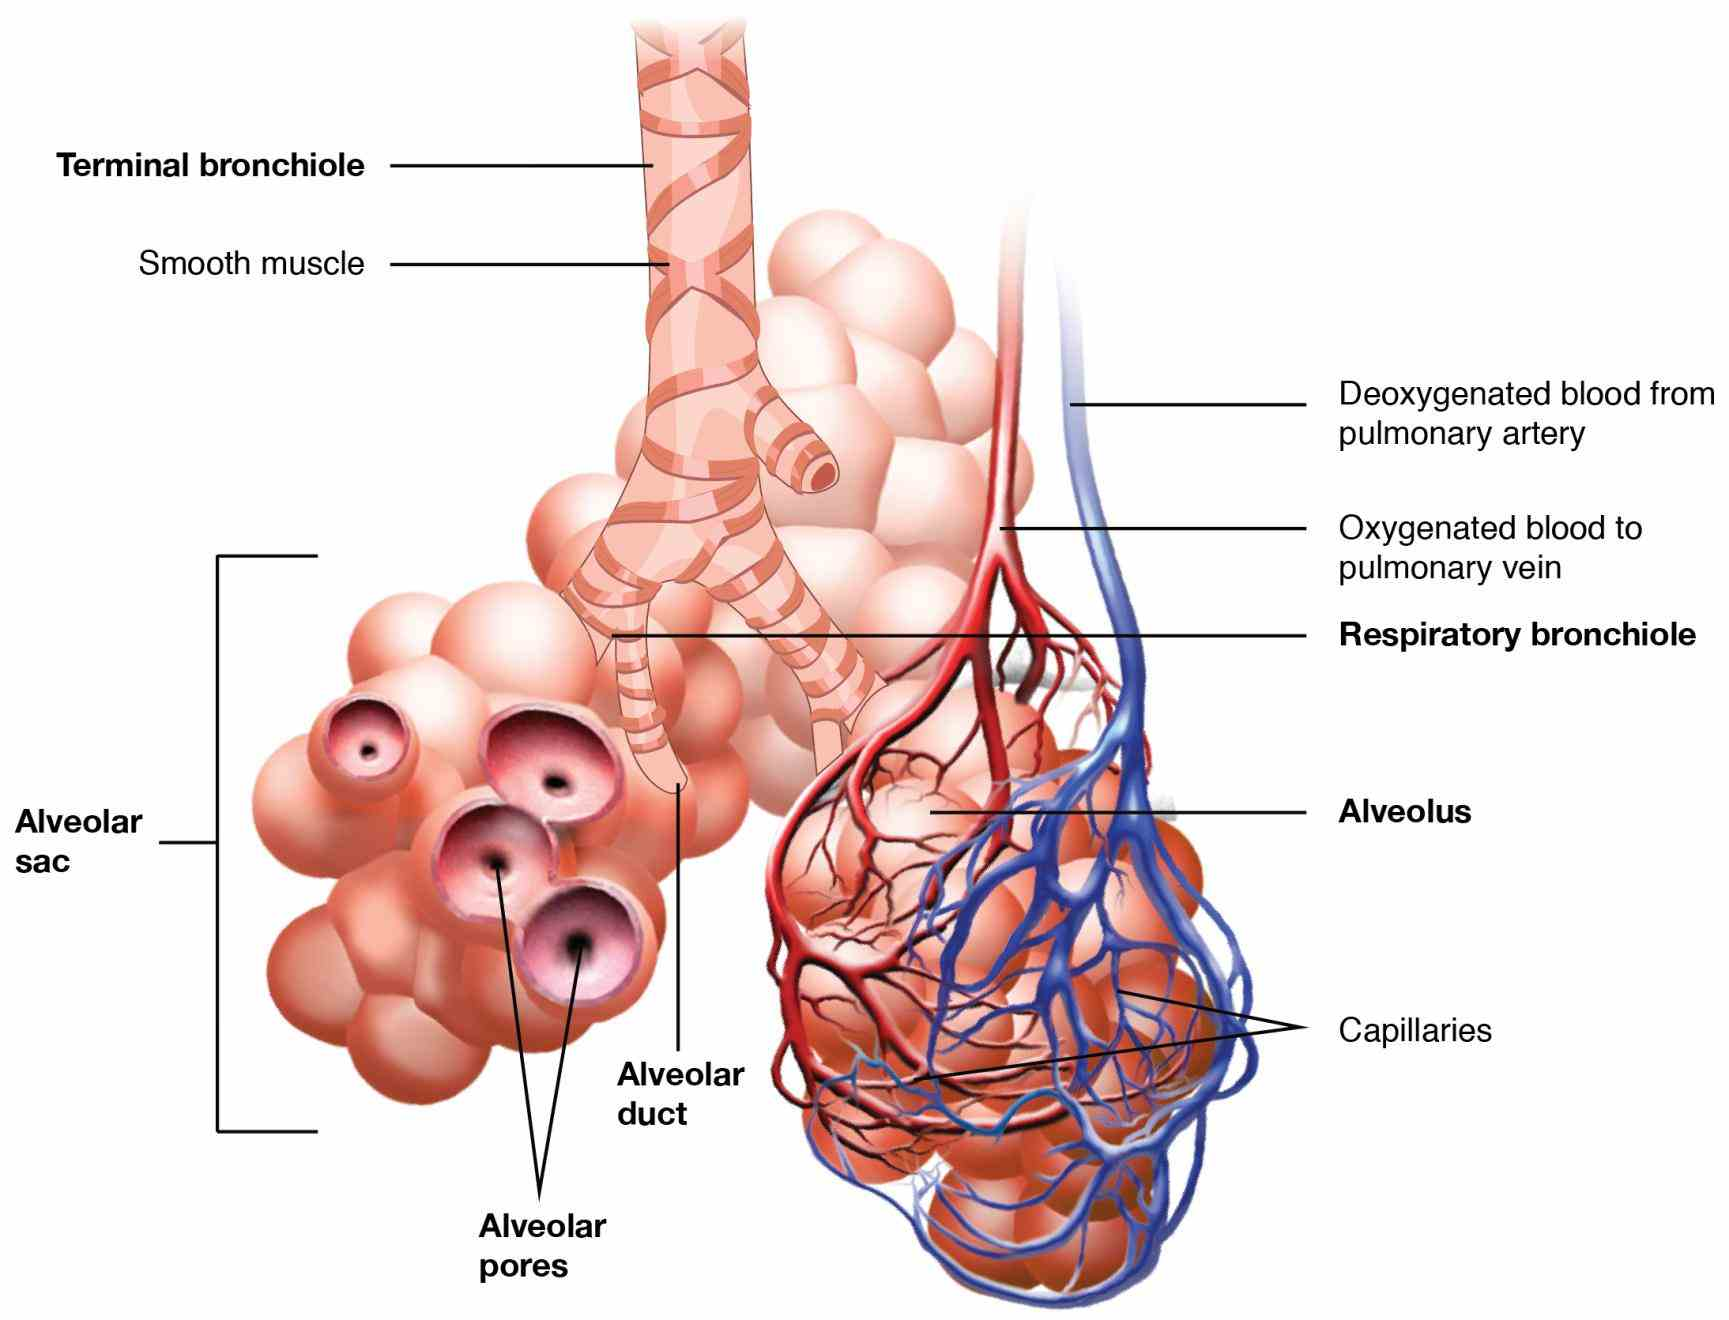 system along with complete physiology lungs trachea and more the Anatomy Of The Pulmonary System respiratory system plays a